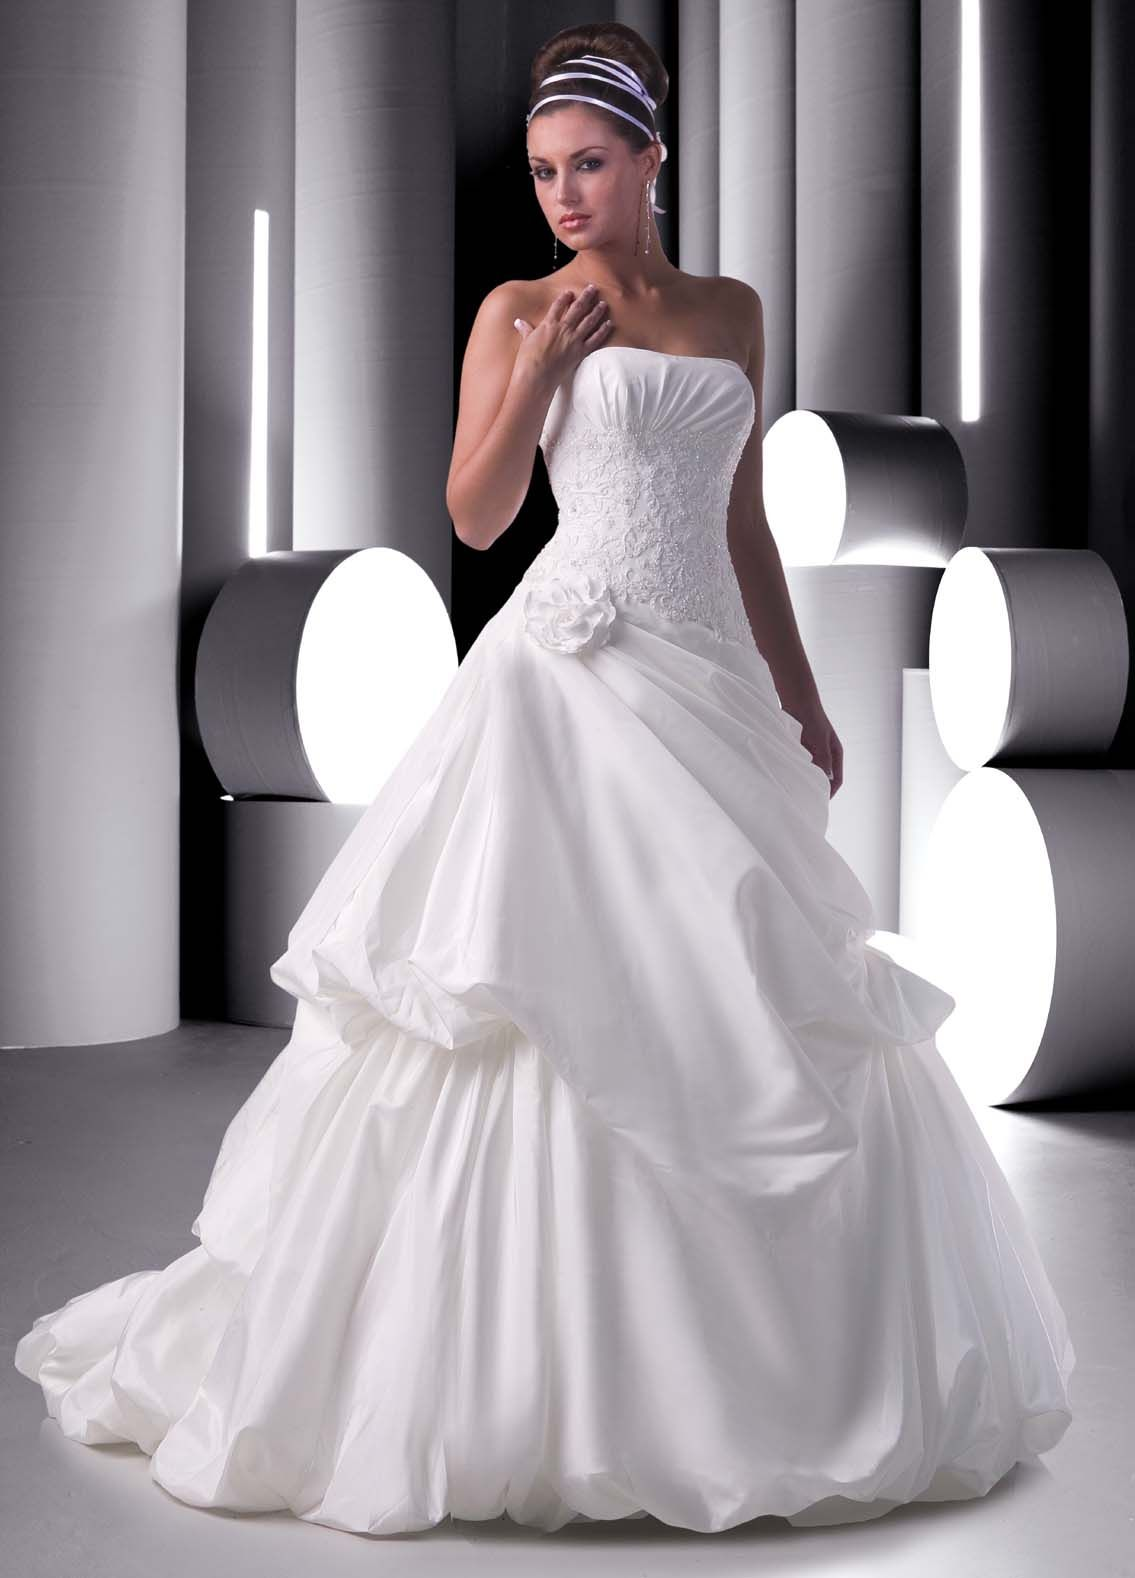 55+ Overstock Wedding Dresses - Plus Size Dresses for Wedding Guest ...